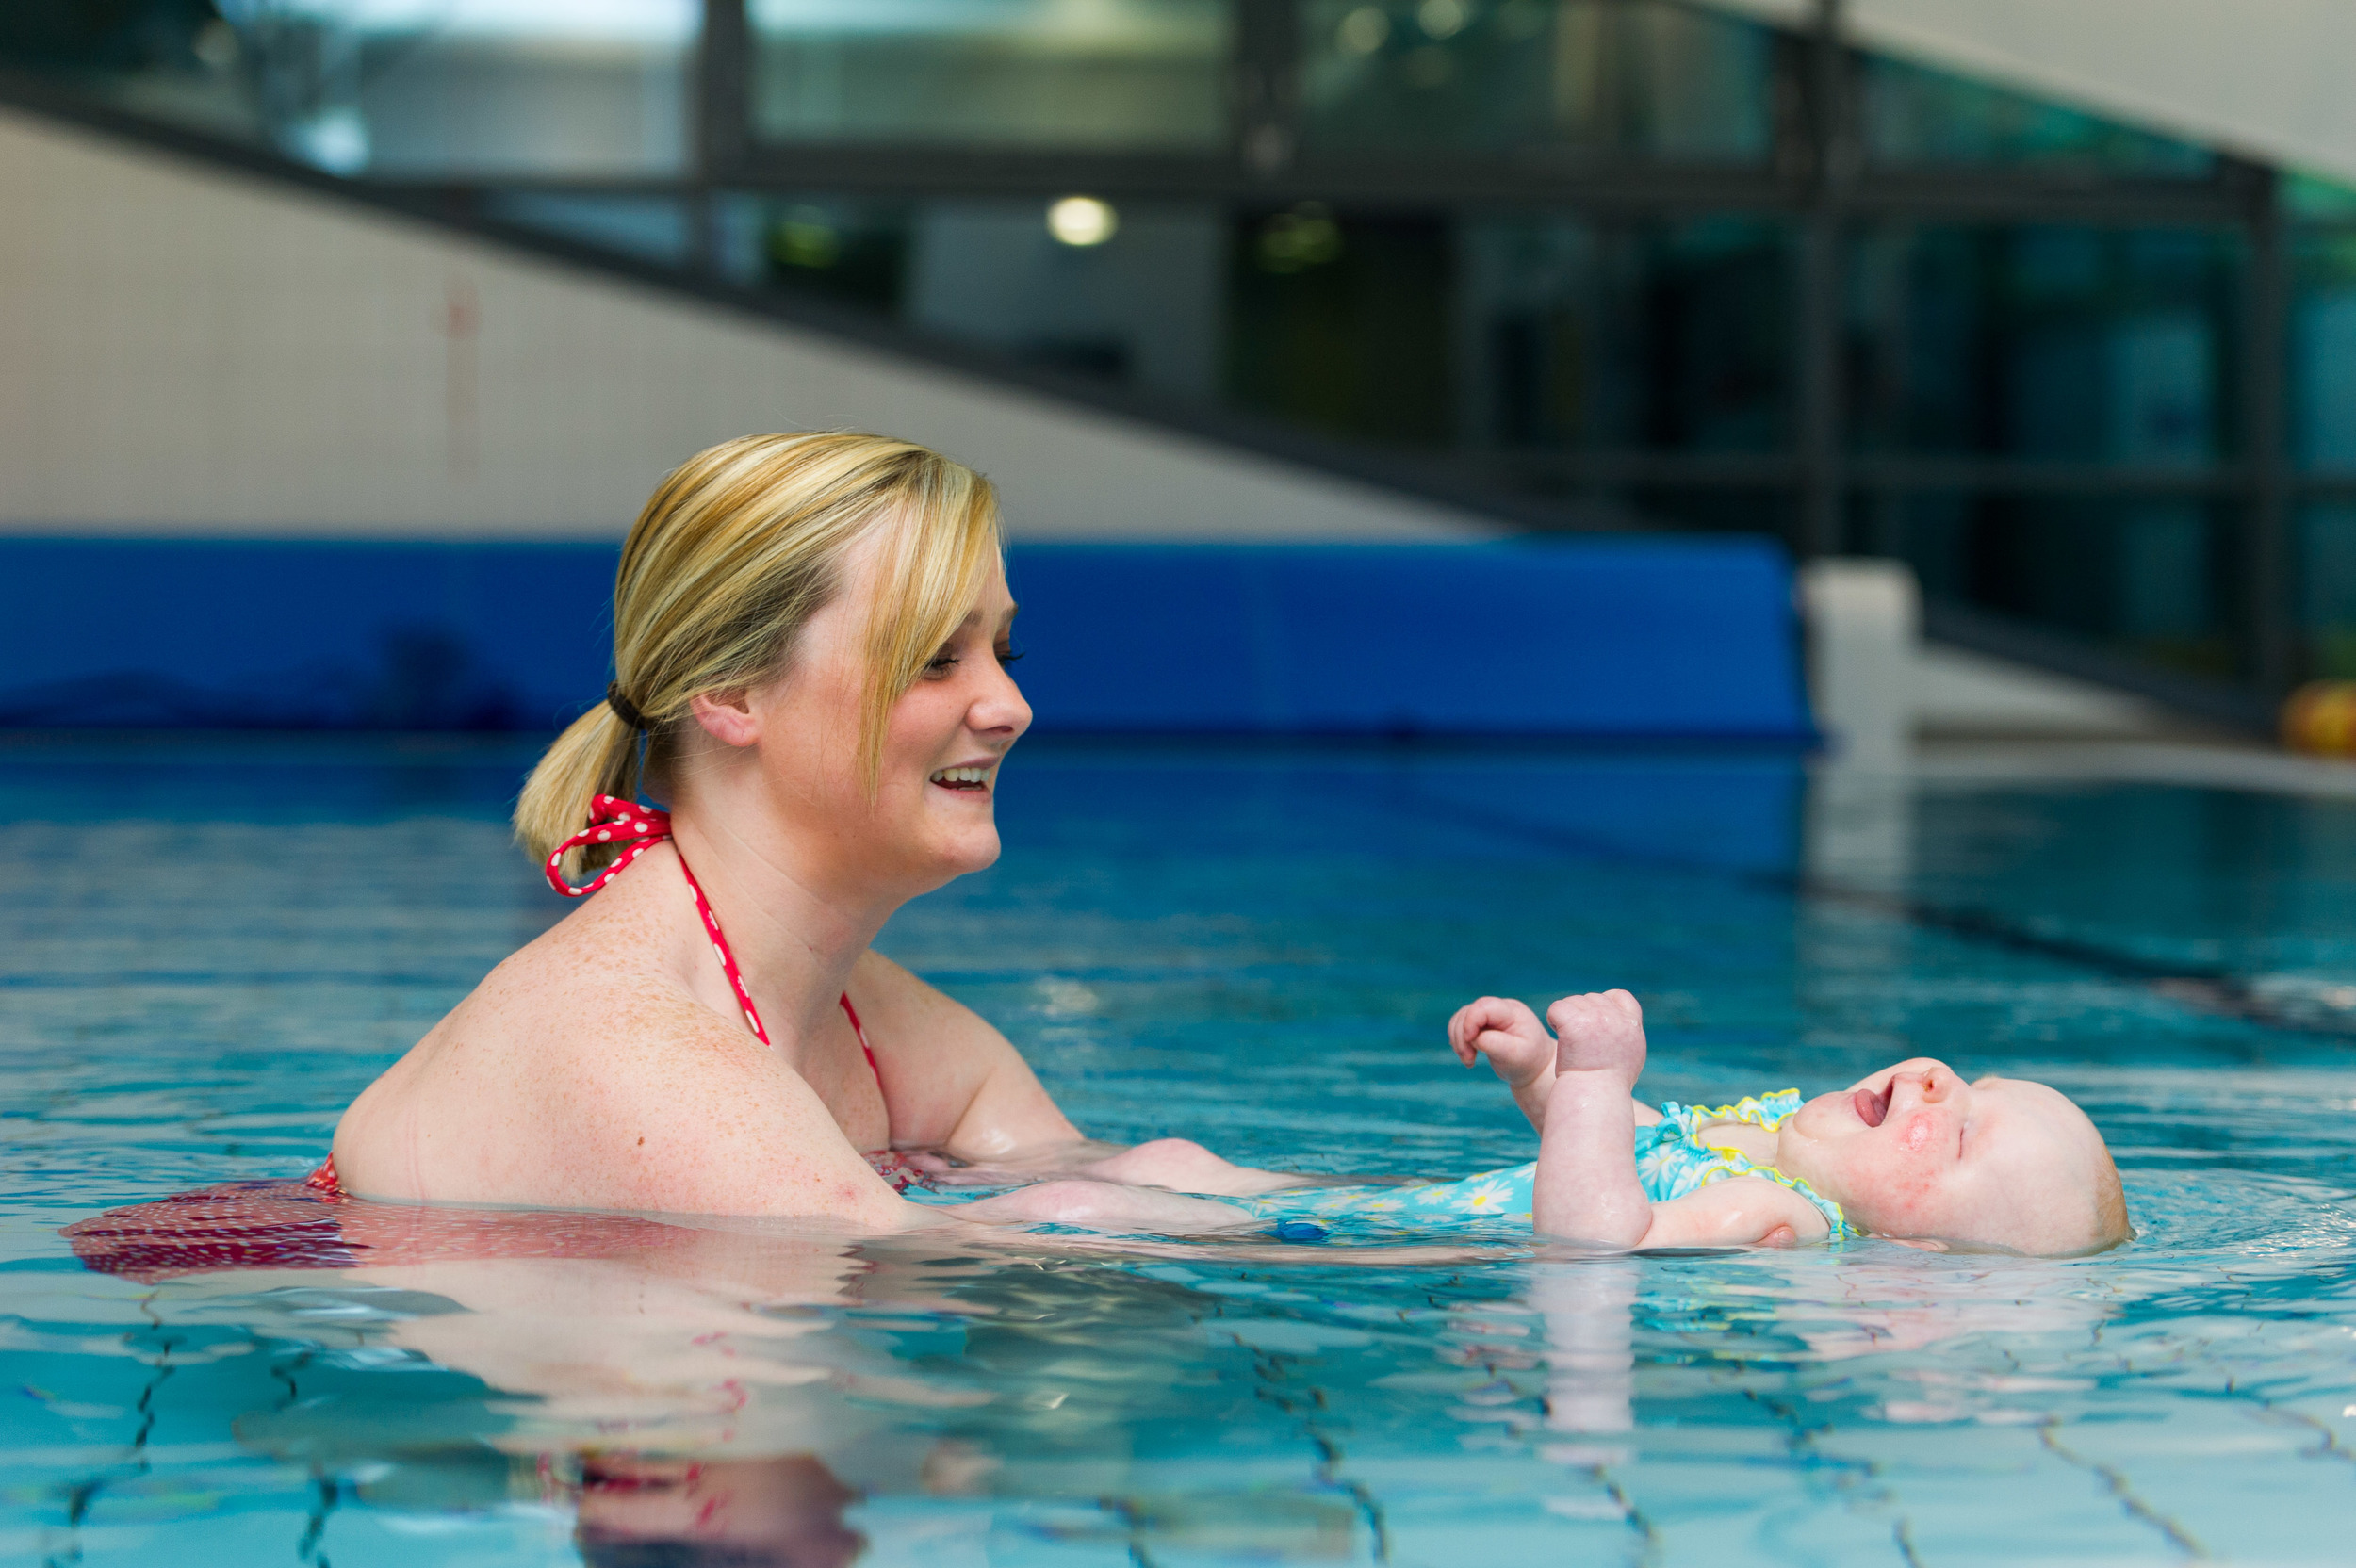 Danielle Davis and Daisy Smith swimming in Serennu Children's Centre, Newport. Daisy has anophthalmia, a rare condition that means she was born without eyes.